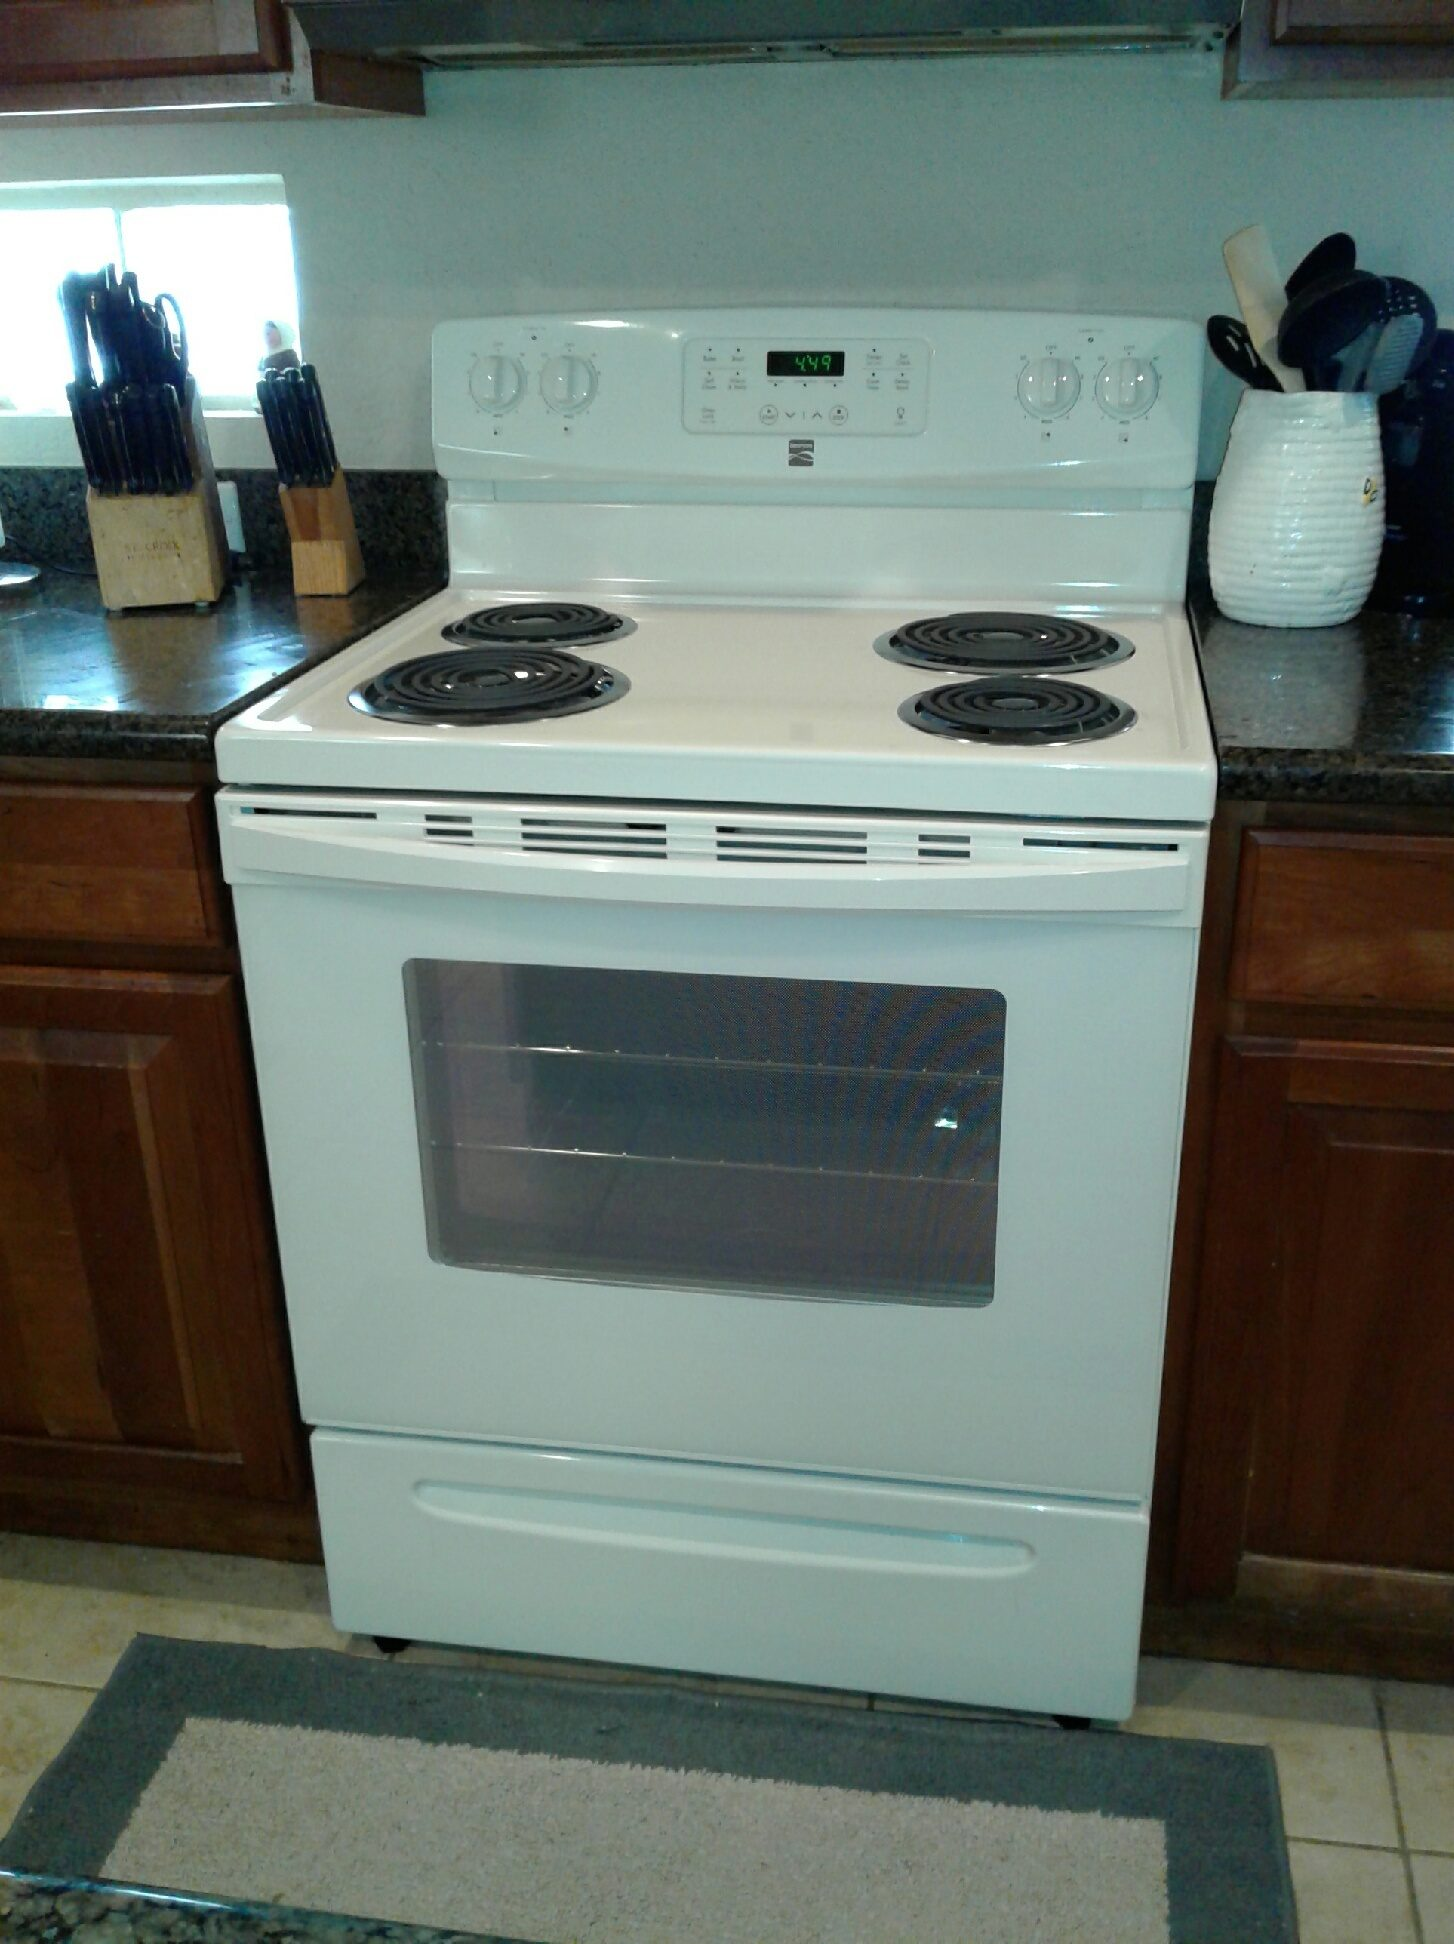 Sears Appliance Reviews Top 282 Reviews And Complaints About Sears Appliance Ovens And